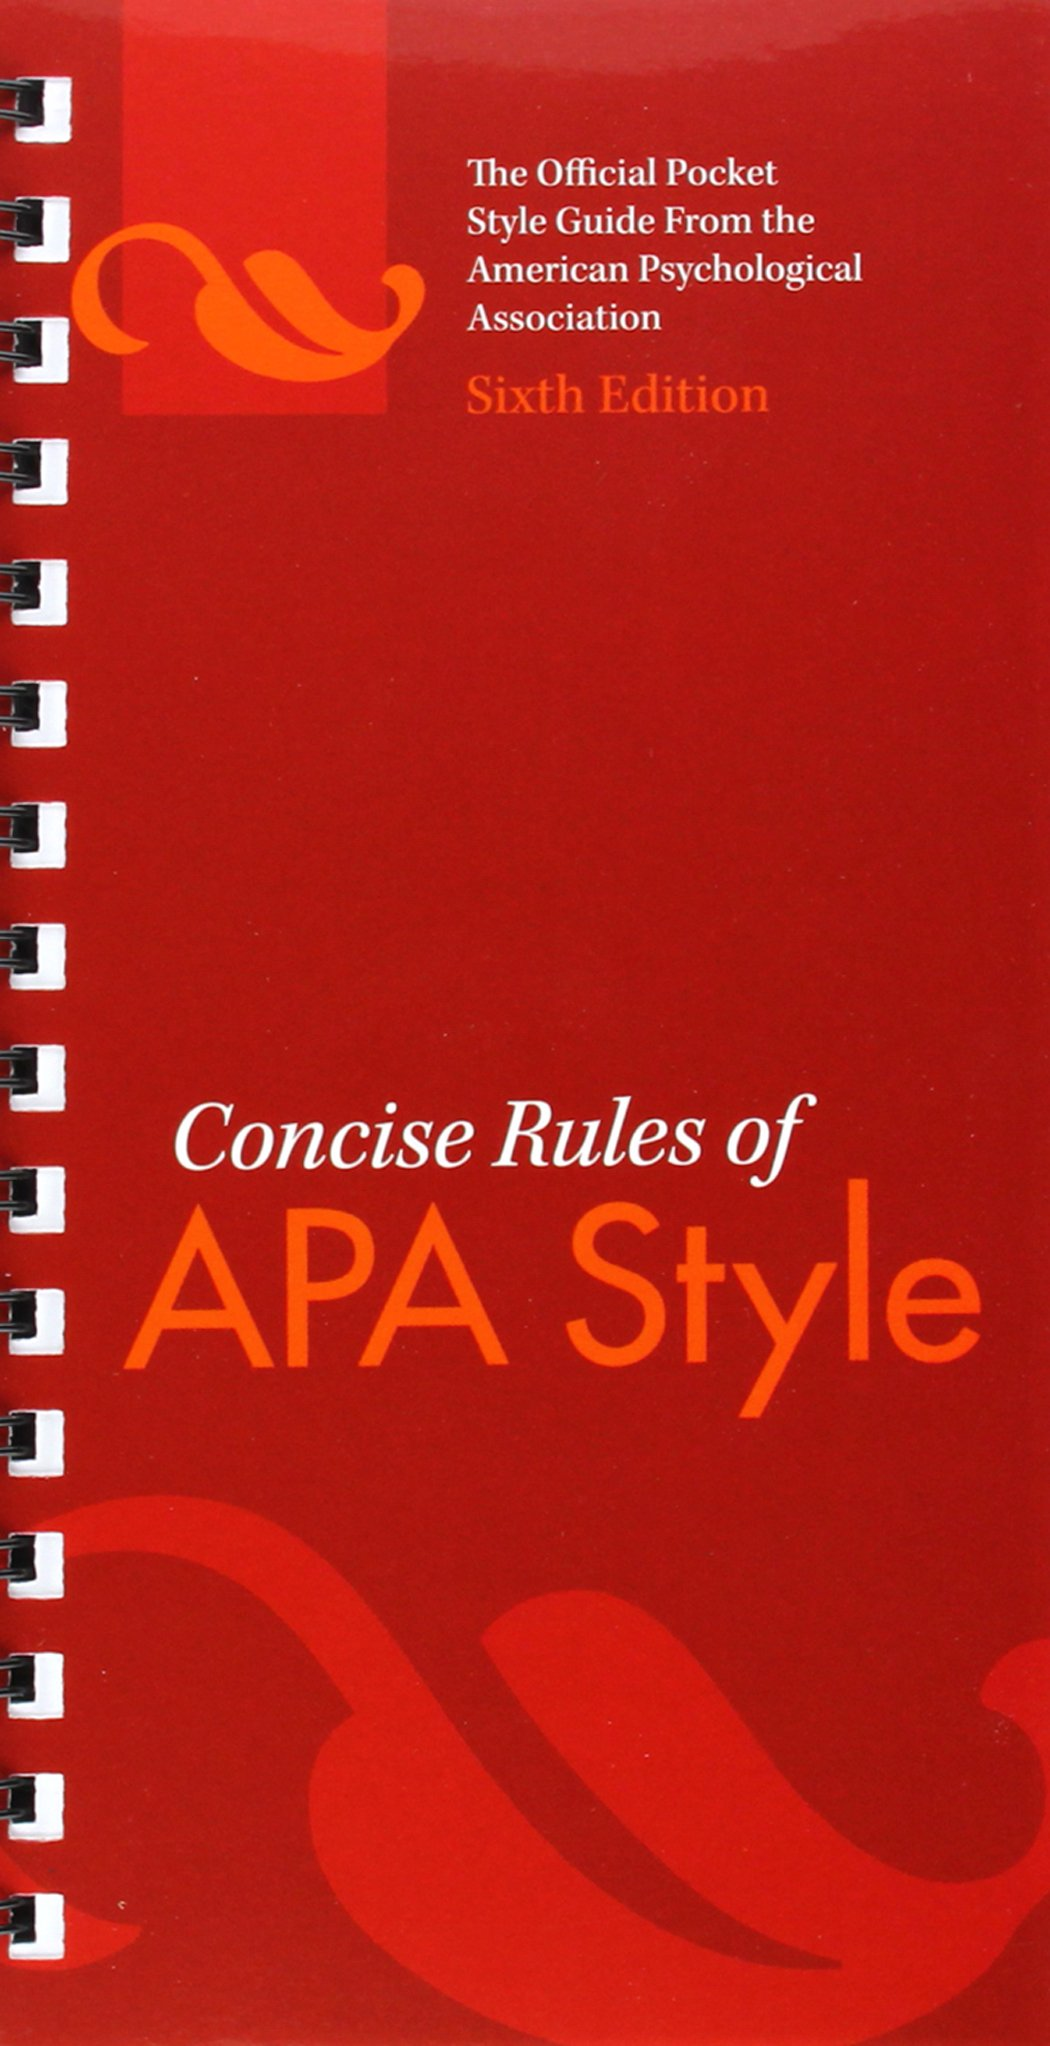 Concise Rules of APA Style by Brand: American Psychological Association